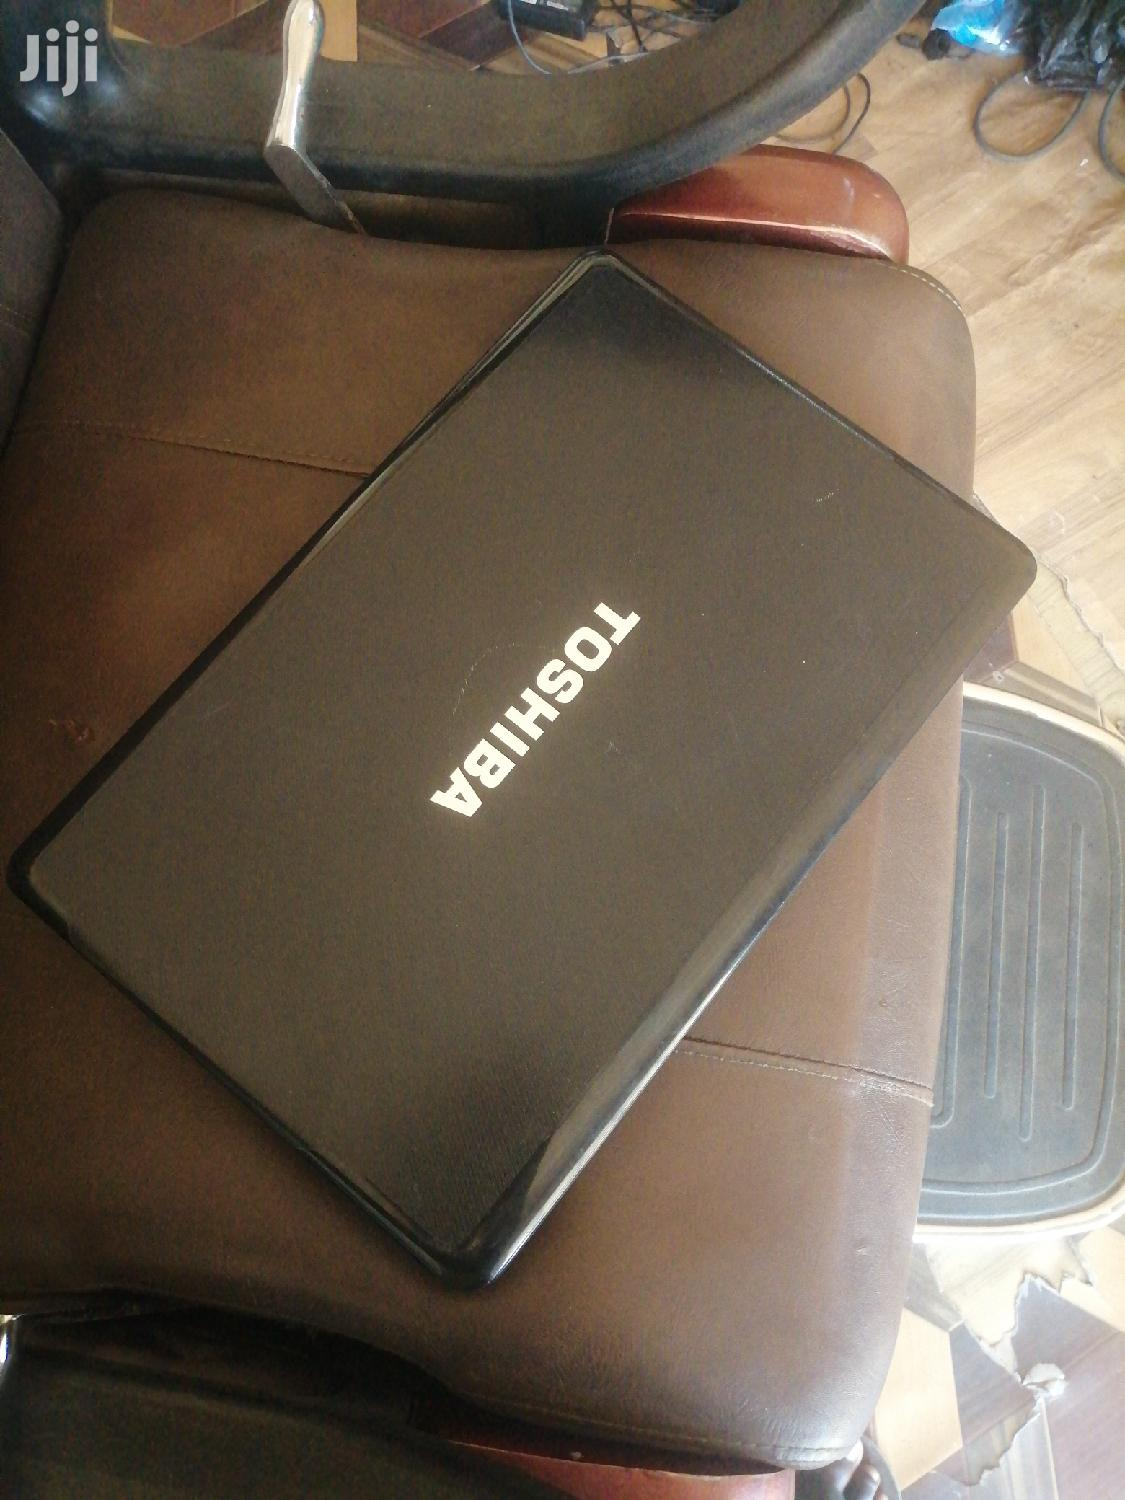 Laptop Toshiba Satellite A500 4GB Intel Core I5 HDD 500GB | Laptops & Computers for sale in Accra Metropolitan, Greater Accra, Ghana